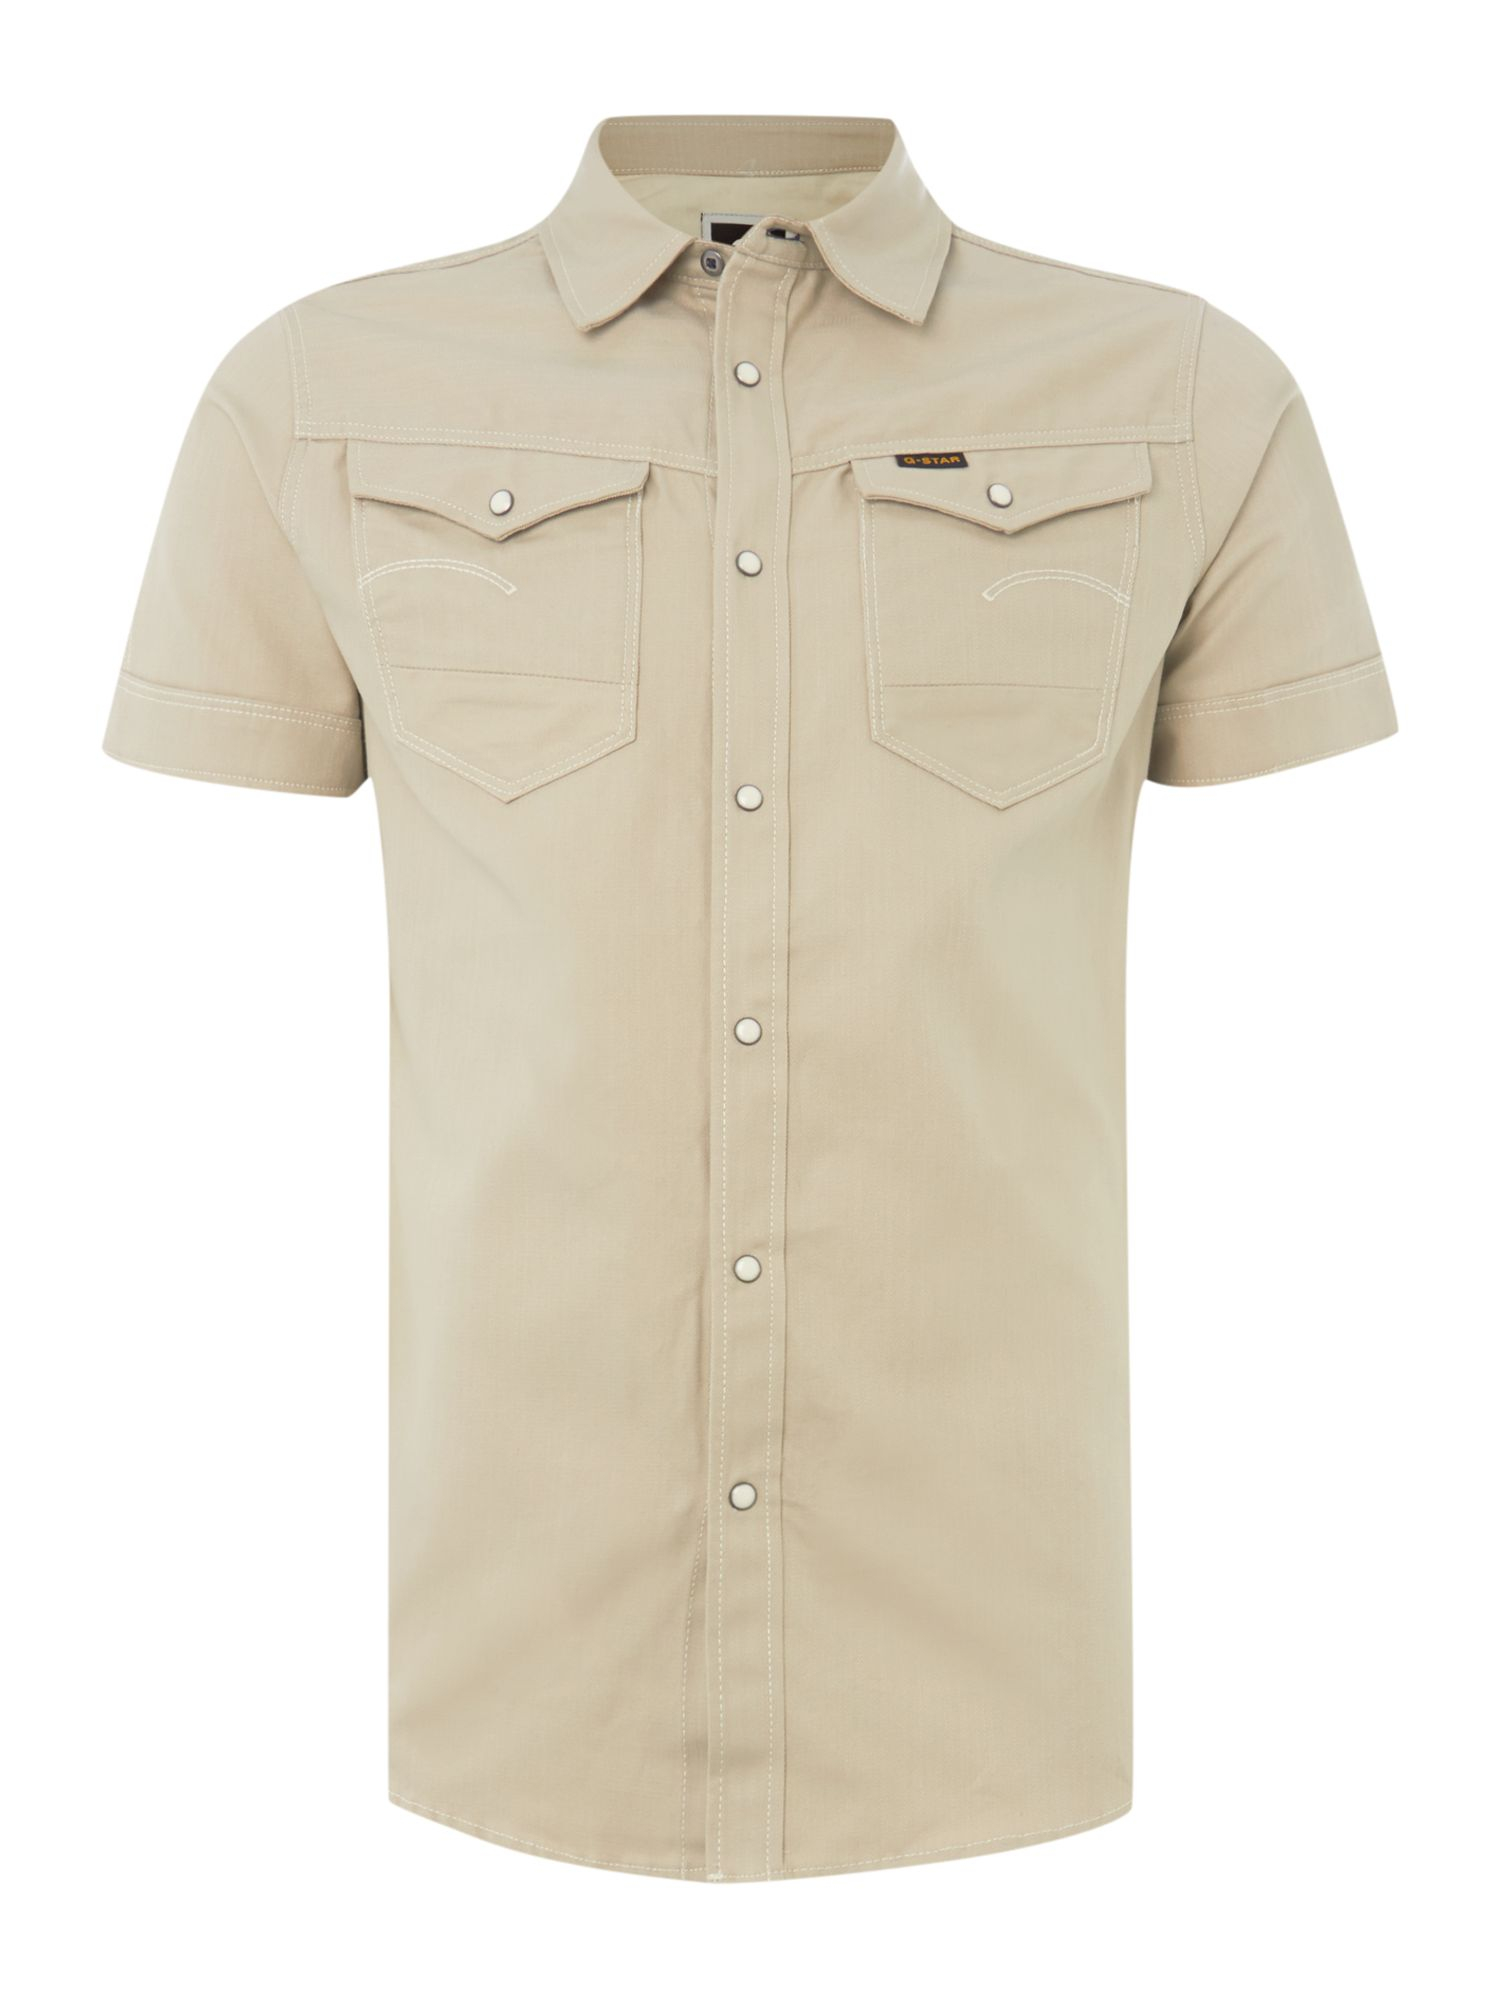 G star raw short sleeve two pocket shirt in khaki for men for Mens two pocket short sleeve shirts